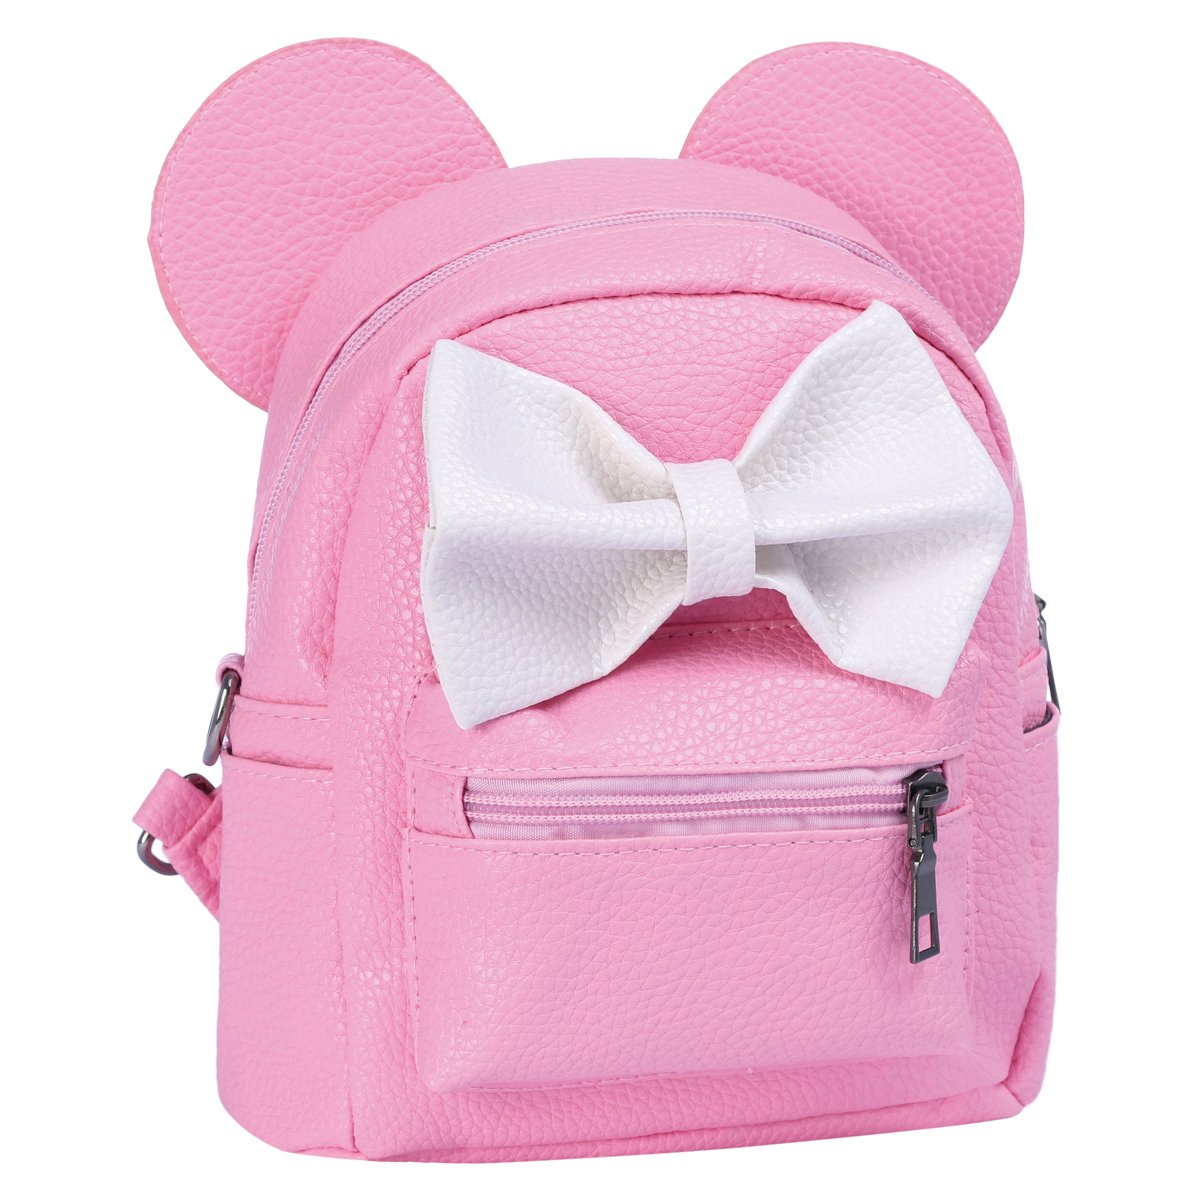 Women Kids Girls Leather Shoulder Backpack Cute Mini Cartoon Mouse Ear Straps Bag Child Student School Small Bookbag Casual Travel Outdoor Fashion Bowknot PU Satchel/ Rucksack Daypacks Pink